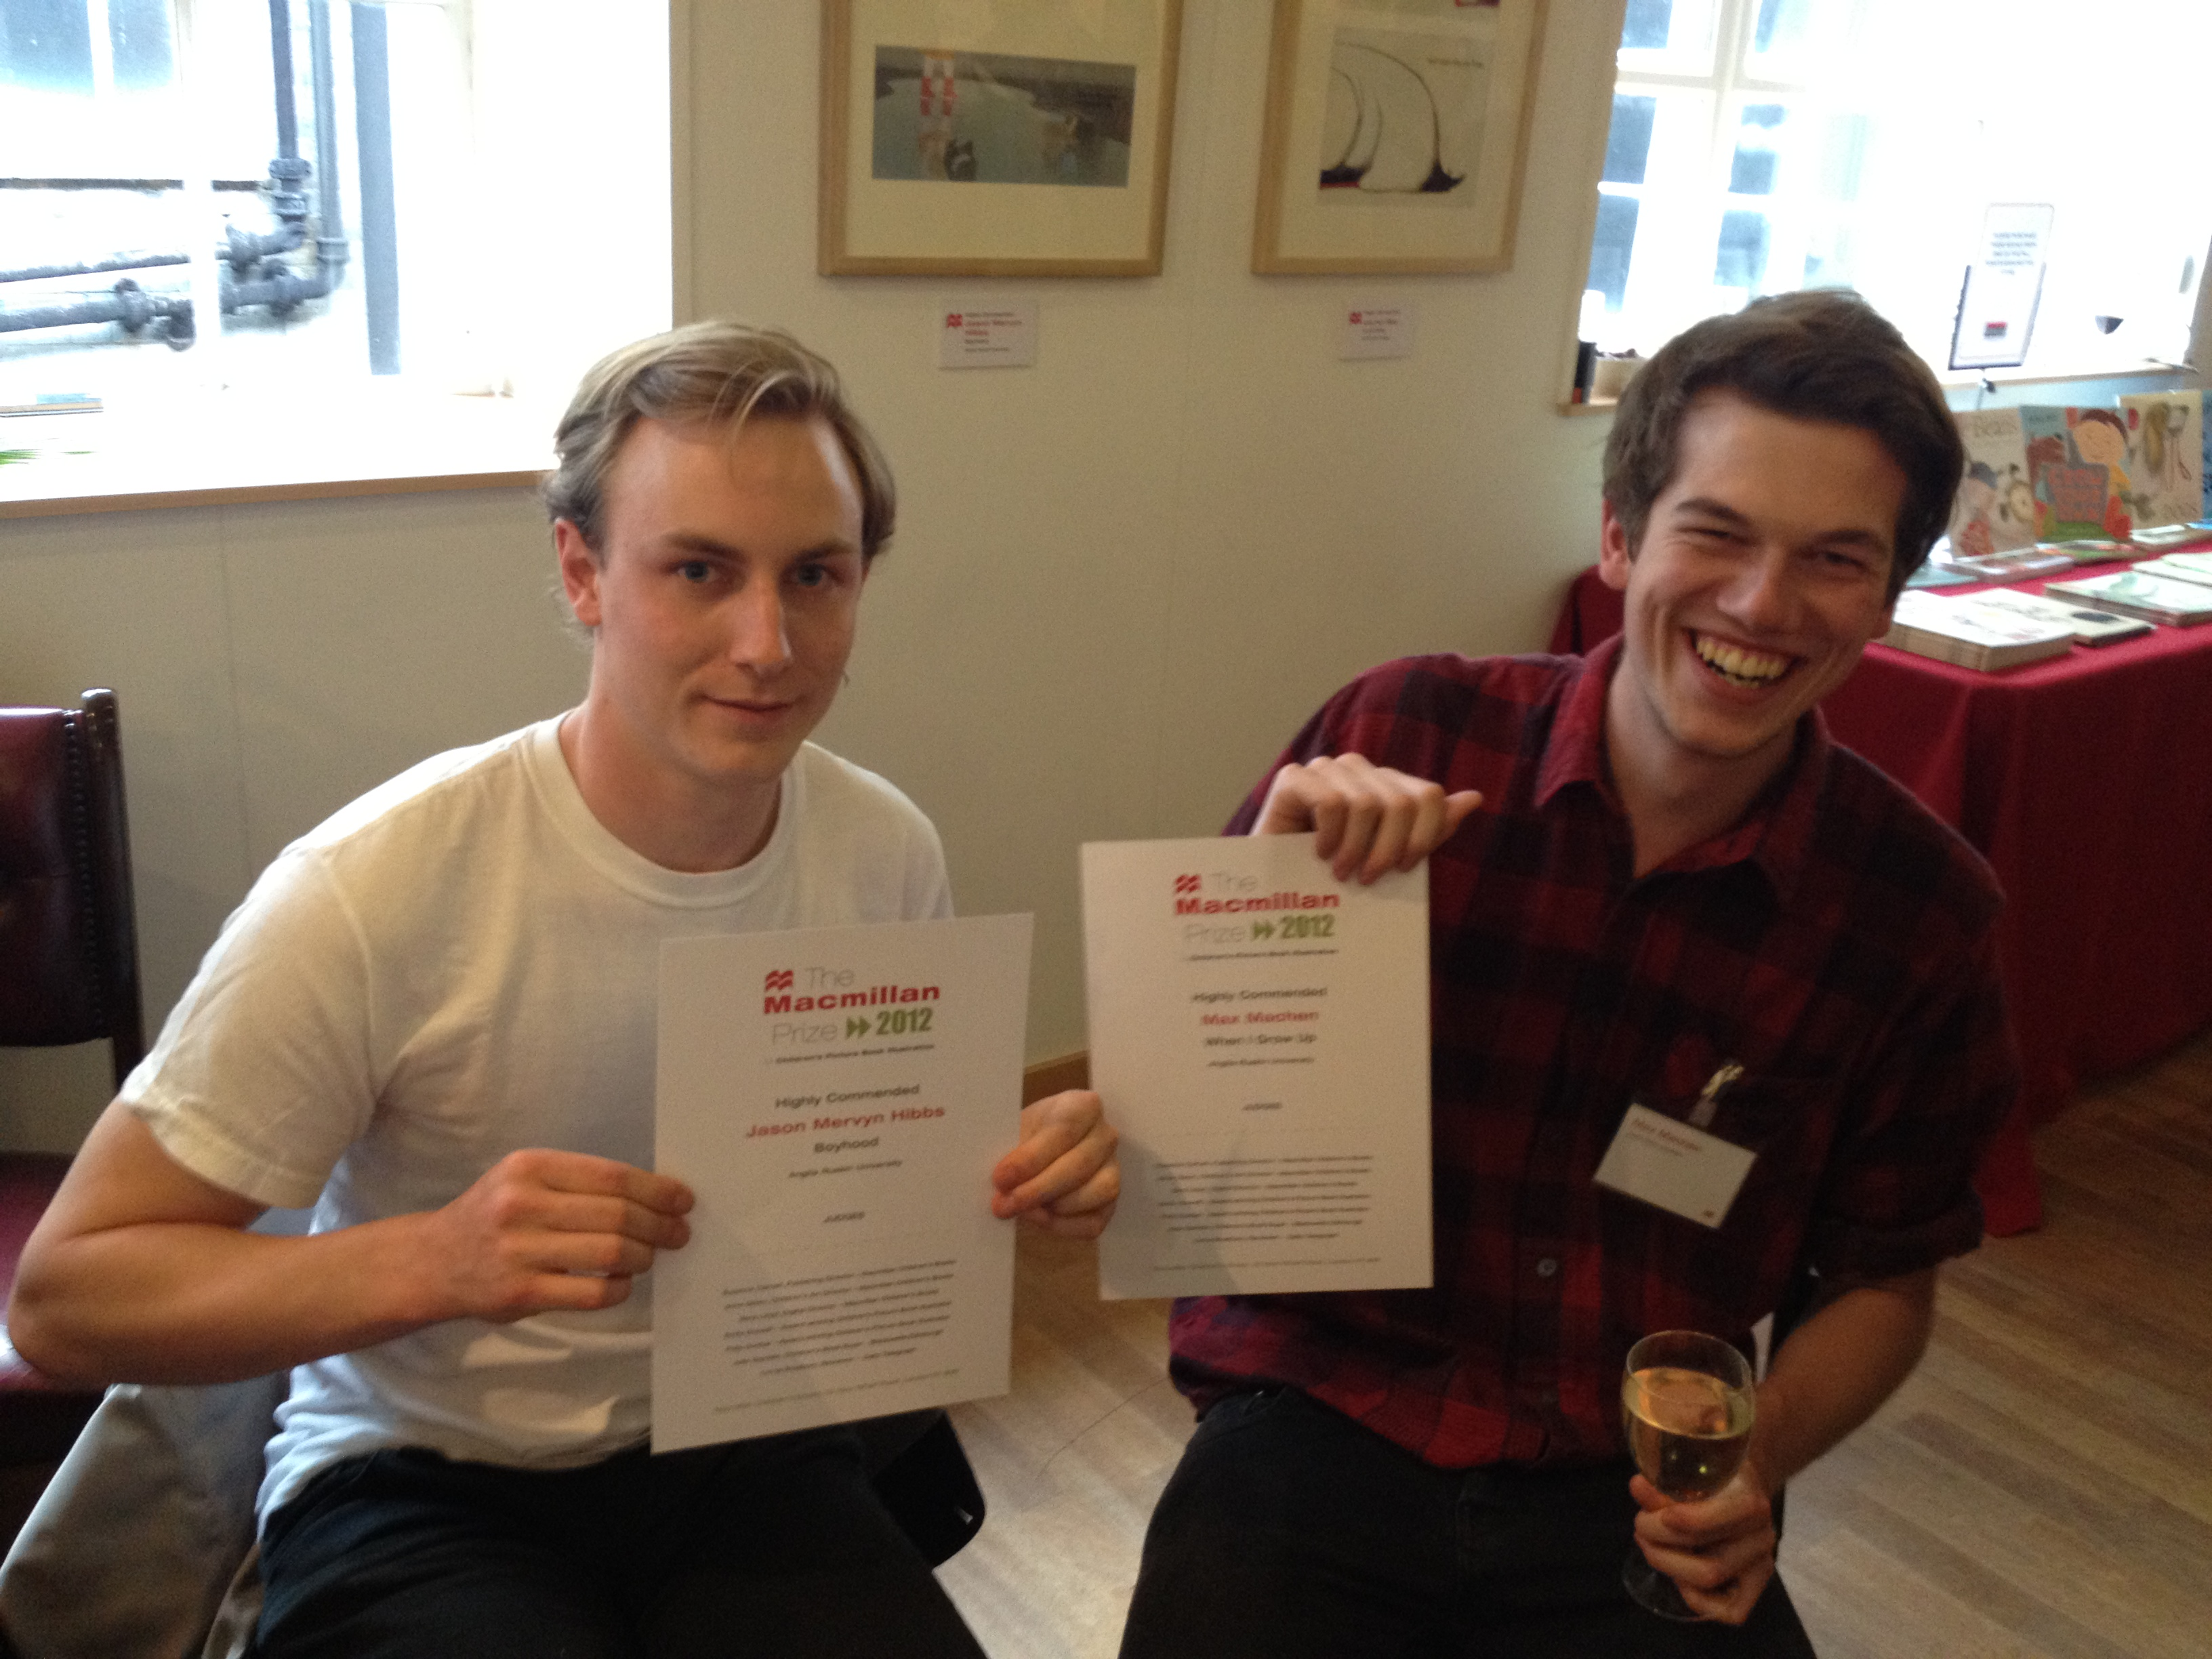 iPhone photograph of Jason Hibbs and Max Machen holding their Highly Commended certificates from The Macmillan Prize 2012